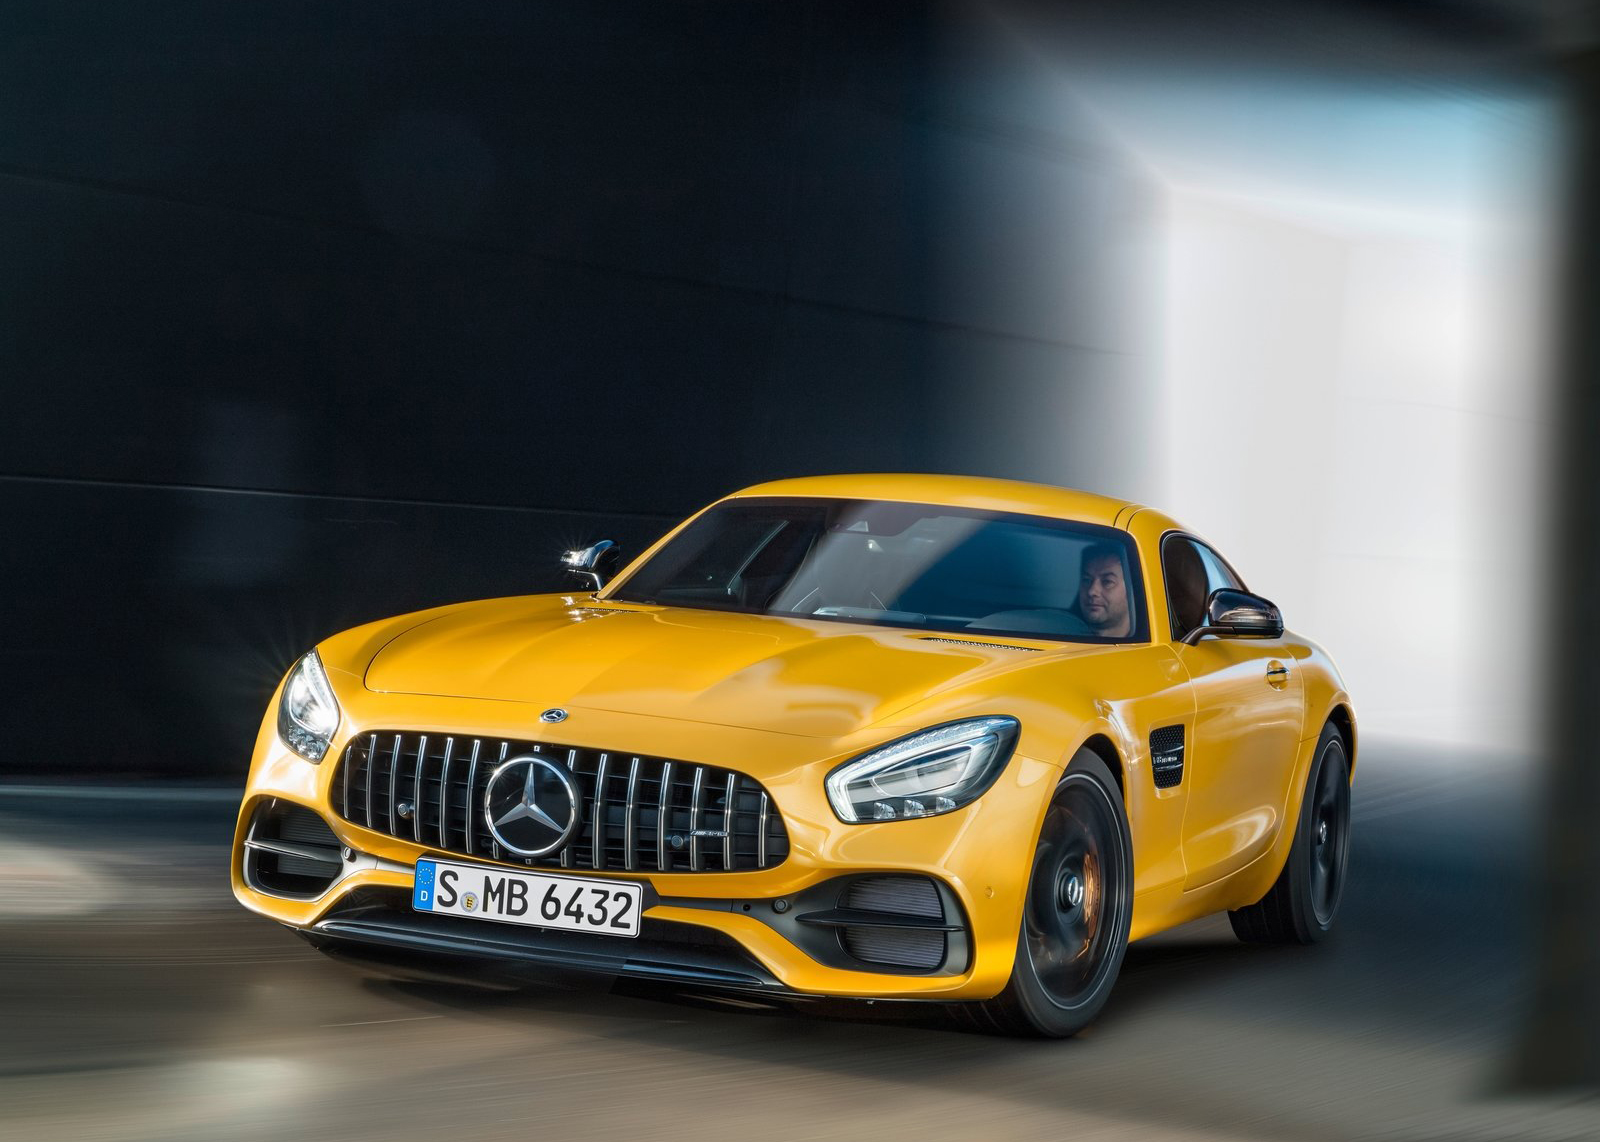 2017 Mercedes-AMG GT S new car review